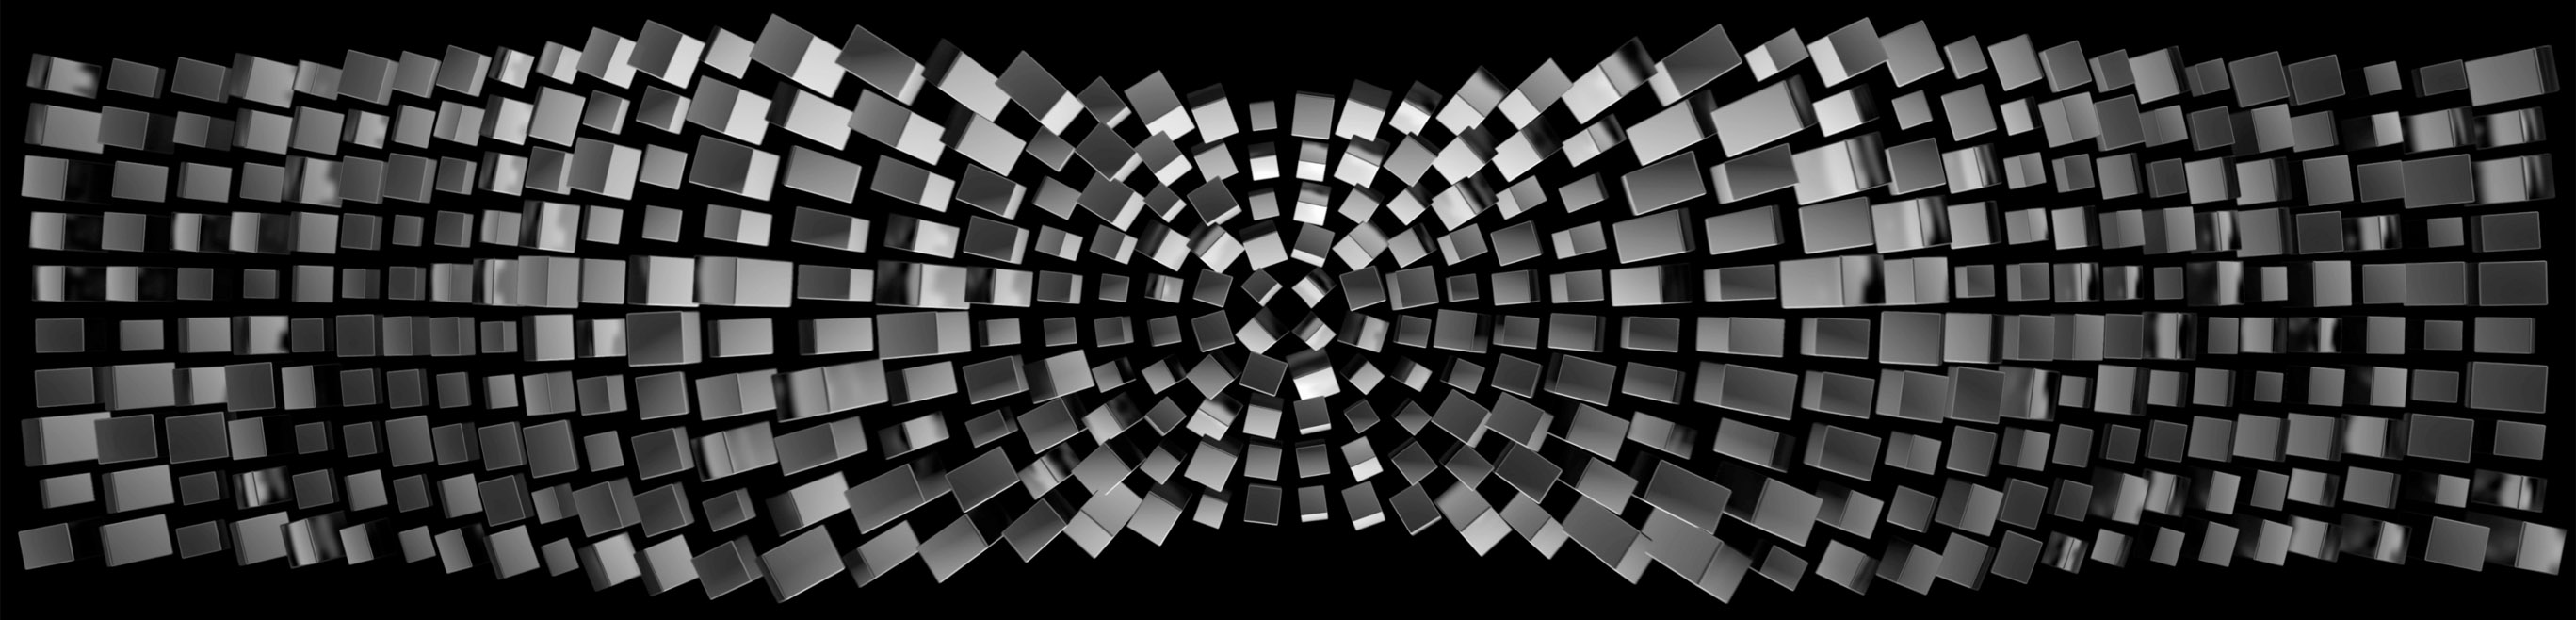 Video_Mapping_Loop_Video_Transition_ Ultra wide Vj Loops